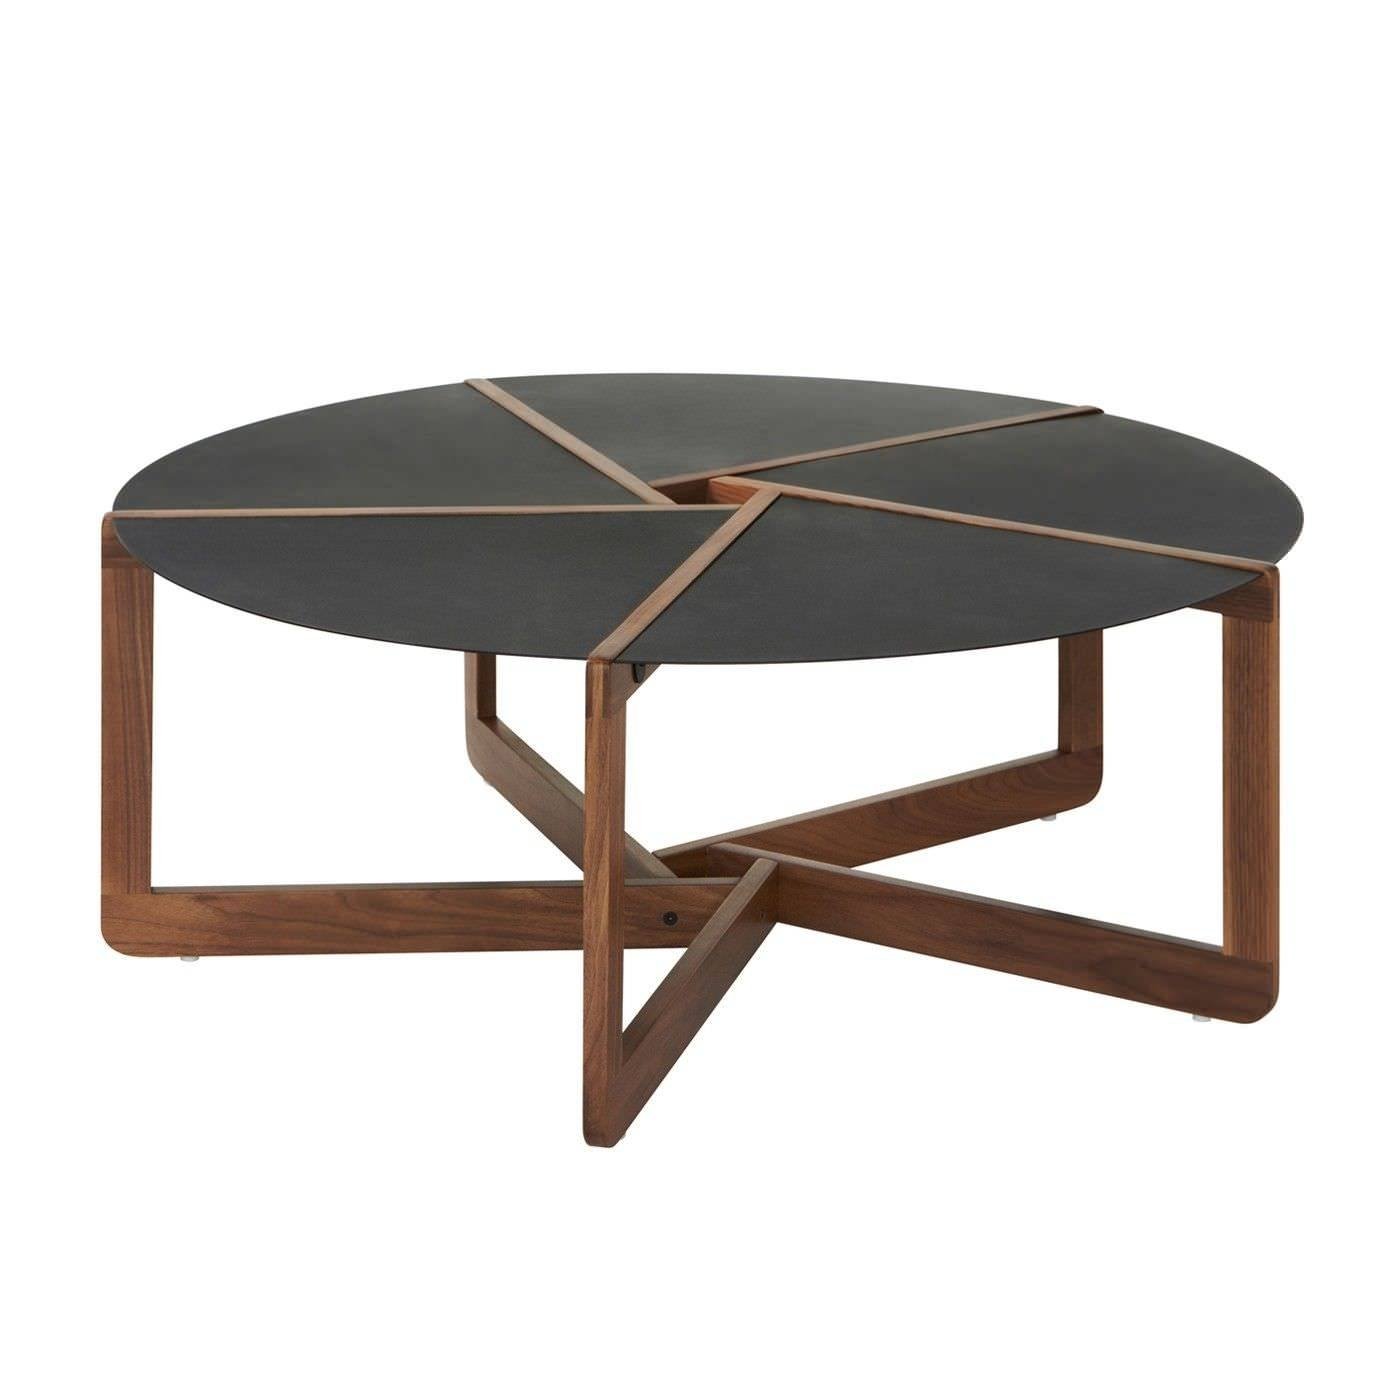 Contemporary Coffee Table / Walnut / Solid Wood / Ash – Pi – Blu Dot Within Contemporary Round Coffee Tables (View 5 of 15)